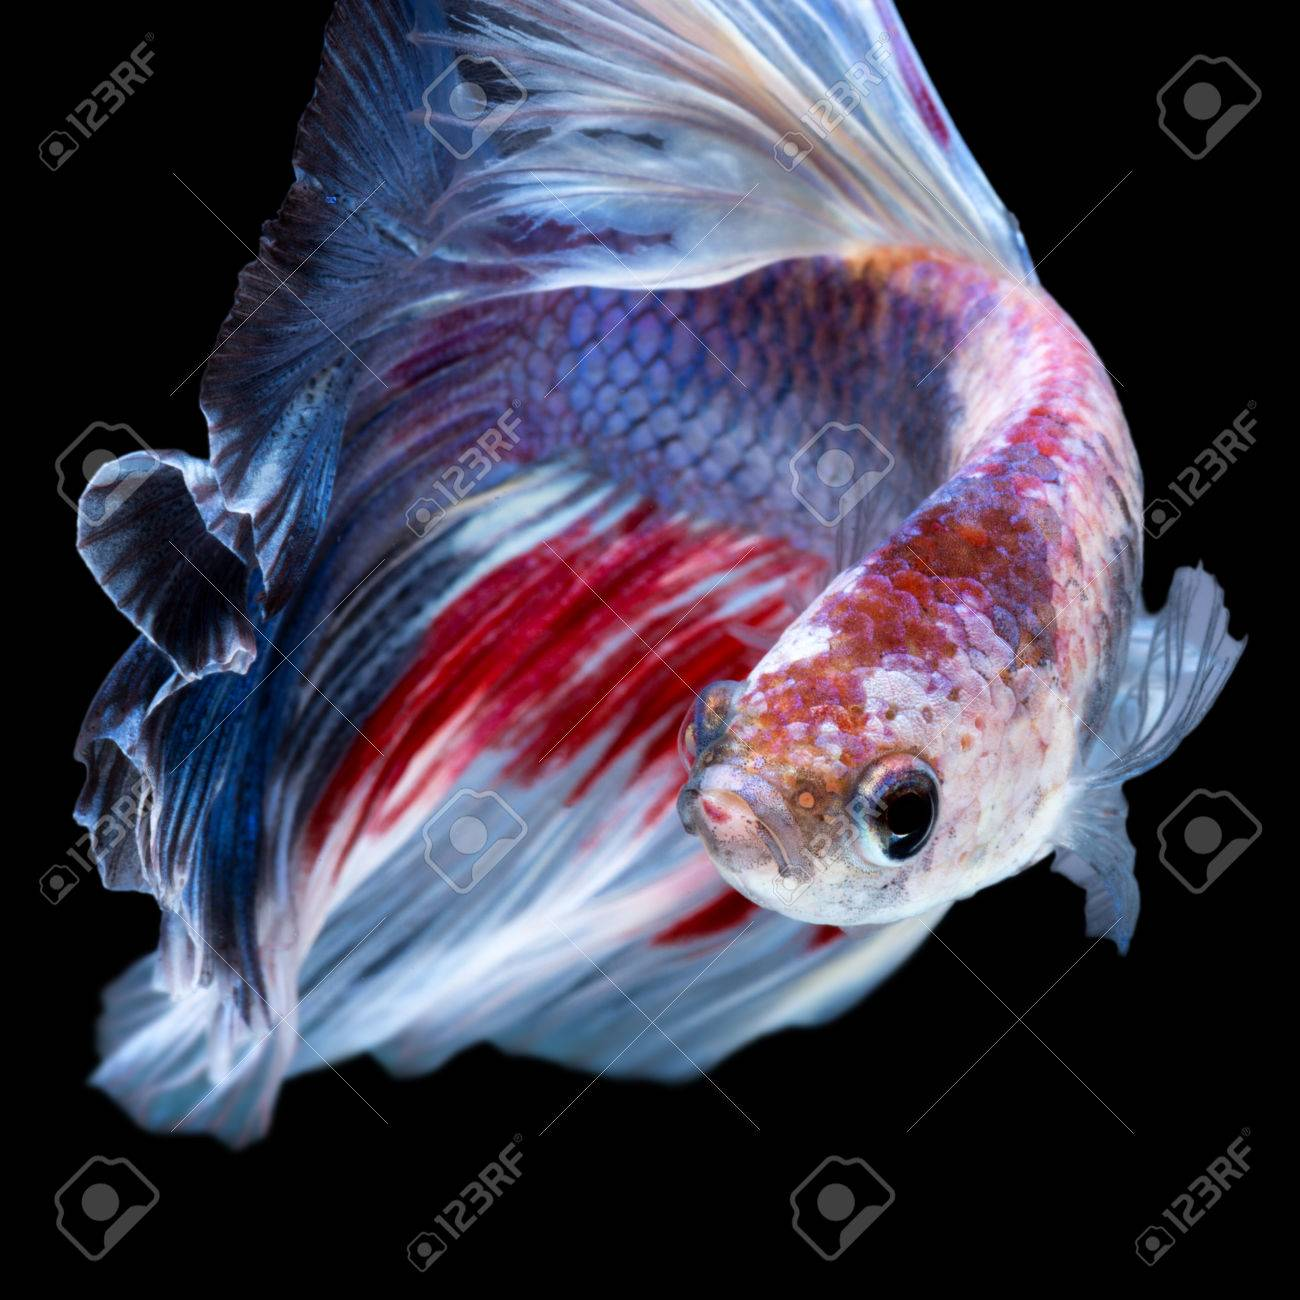 Betta Fish In Black Background Capture The Moving Moment Of